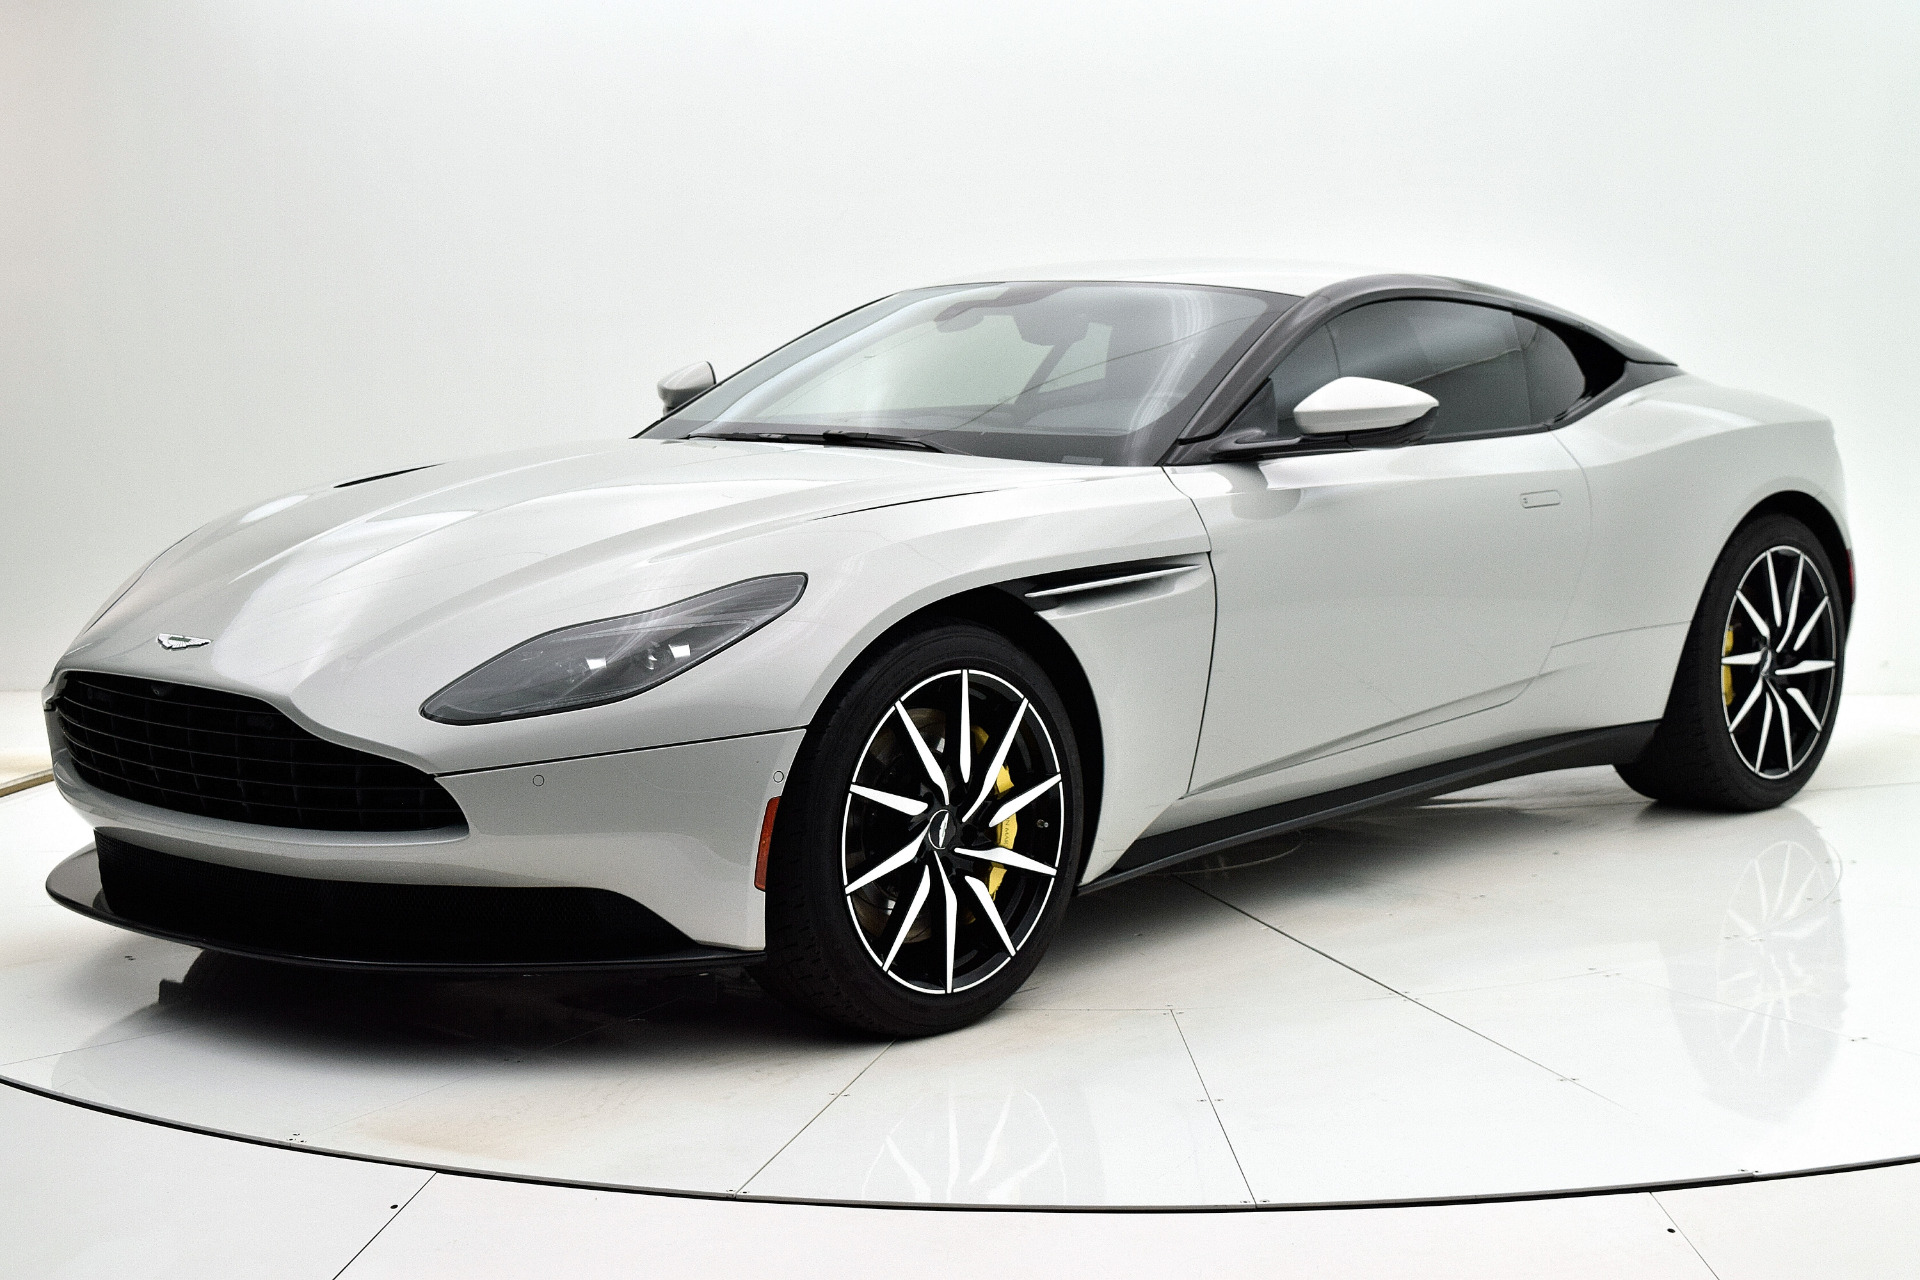 Used 2018 Aston Martin DB11 V8 Coupe for sale $165,880 at Bentley Palmyra N.J. in Palmyra NJ 08065 2